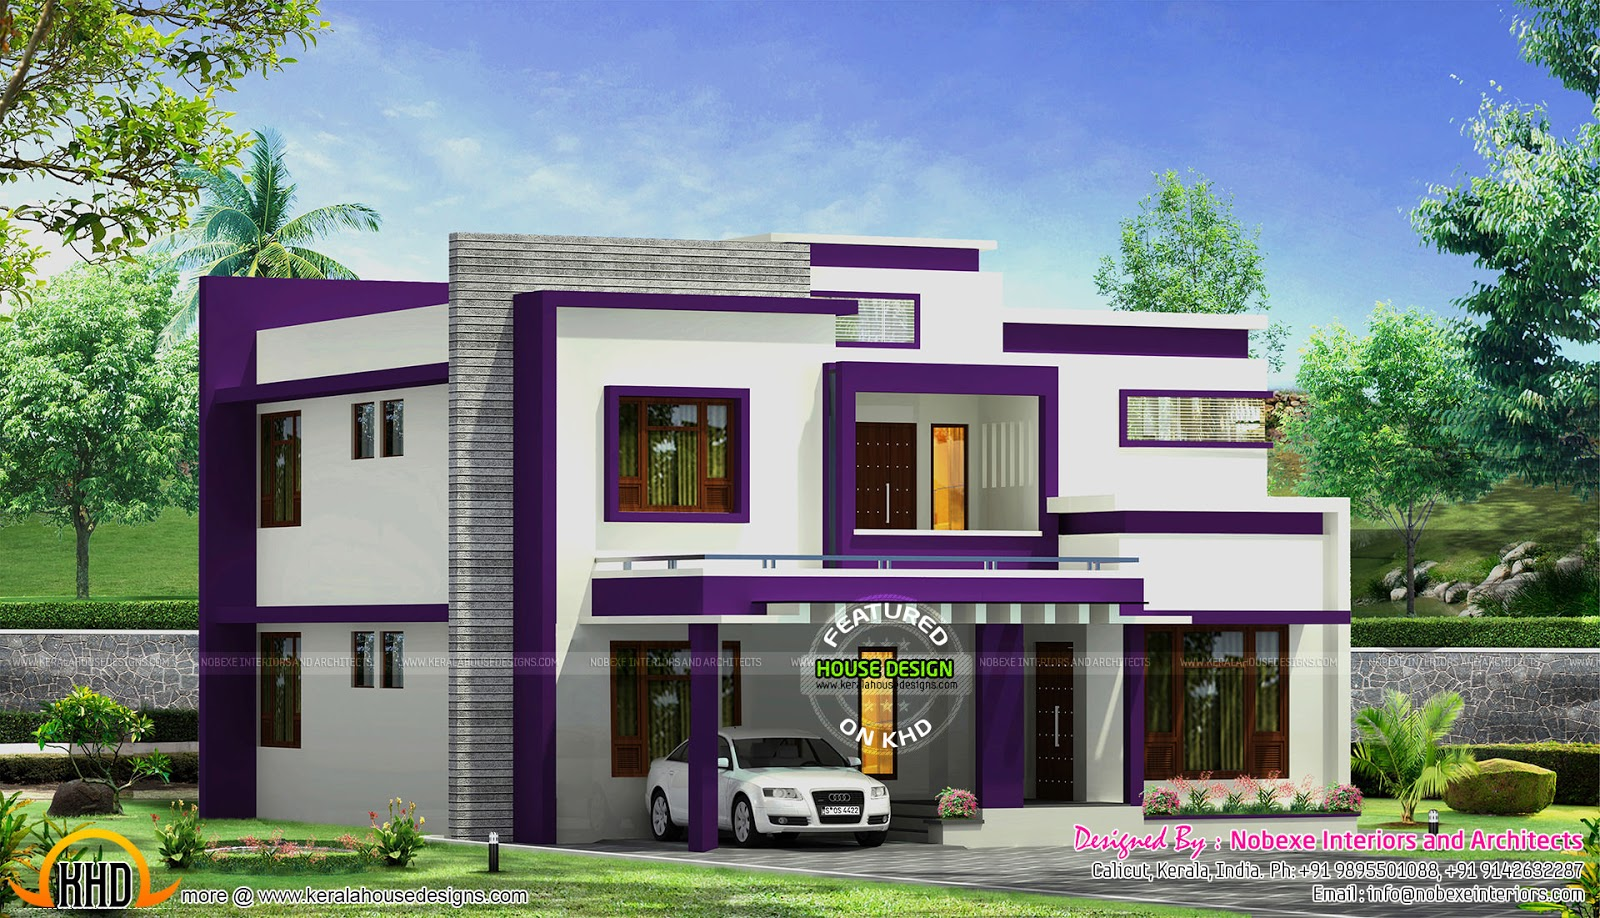 Contemporary home design by nobexe interiors kerala home for Home design